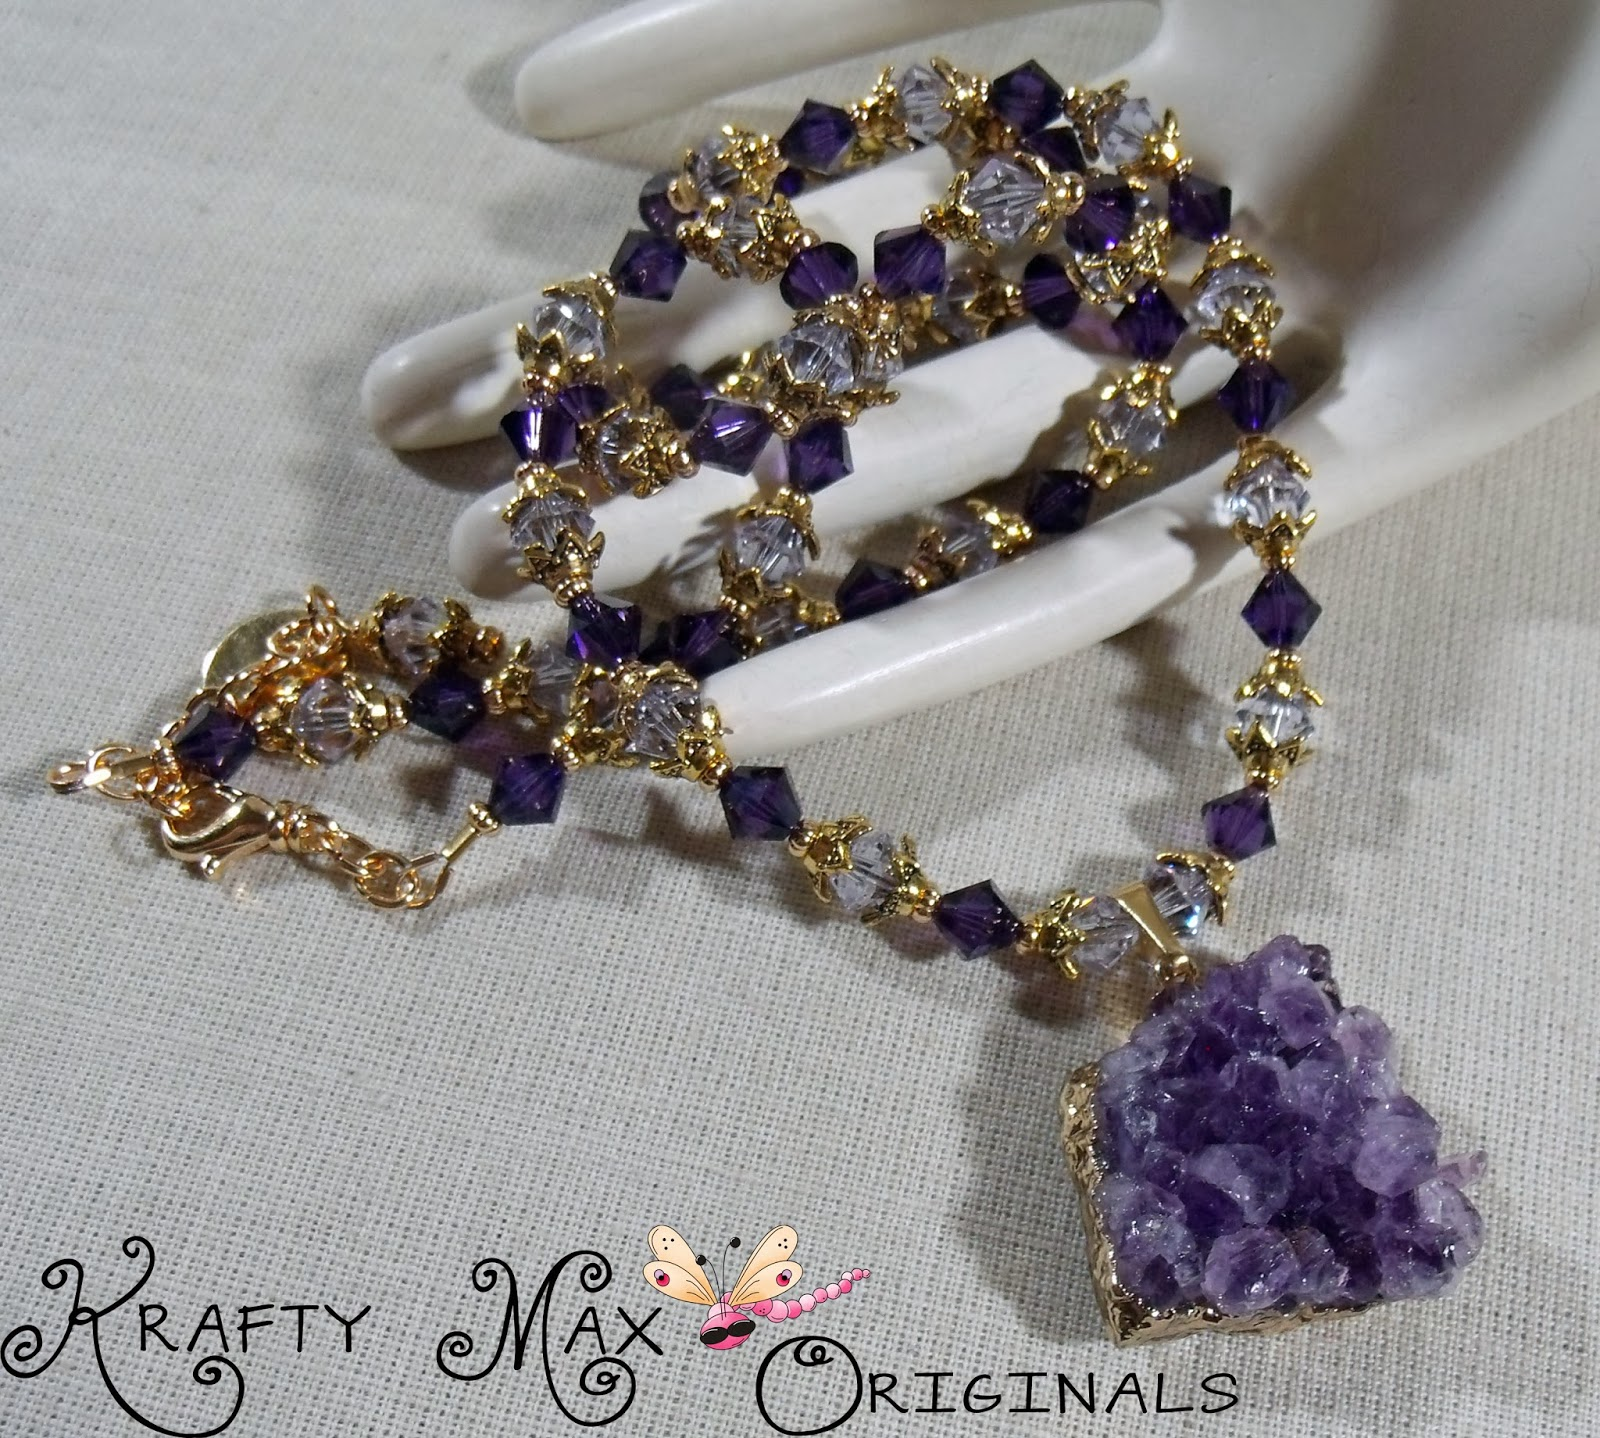 http://www.artfire.com/ext/shop/product_view/KraftyMax/8767799/amethyst_and_swarovski_crystal_necklace_set_-_grandmas_stash/handmade/jewelry/sets/gemstone